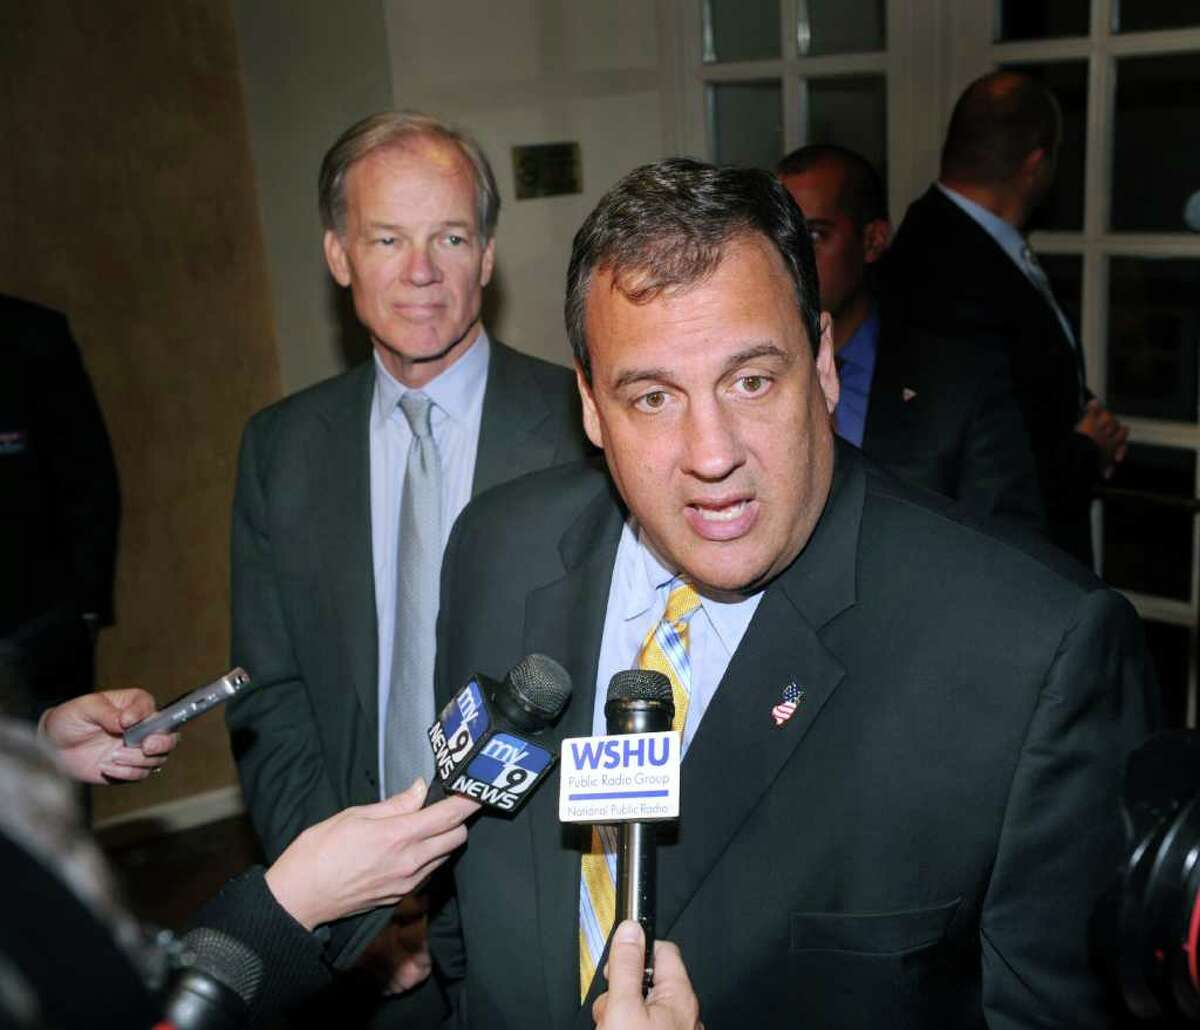 New Jersey Gov. Chris Christie, right, speaks with reporters during a campaign fundraising event for fellow Republican Tom Foley of Greenwich, left, who is running for governor of the state of Connecticut, Thursday night, Oct. 14, 2010 at the Hyatt Regency Hotel of Greenwich.